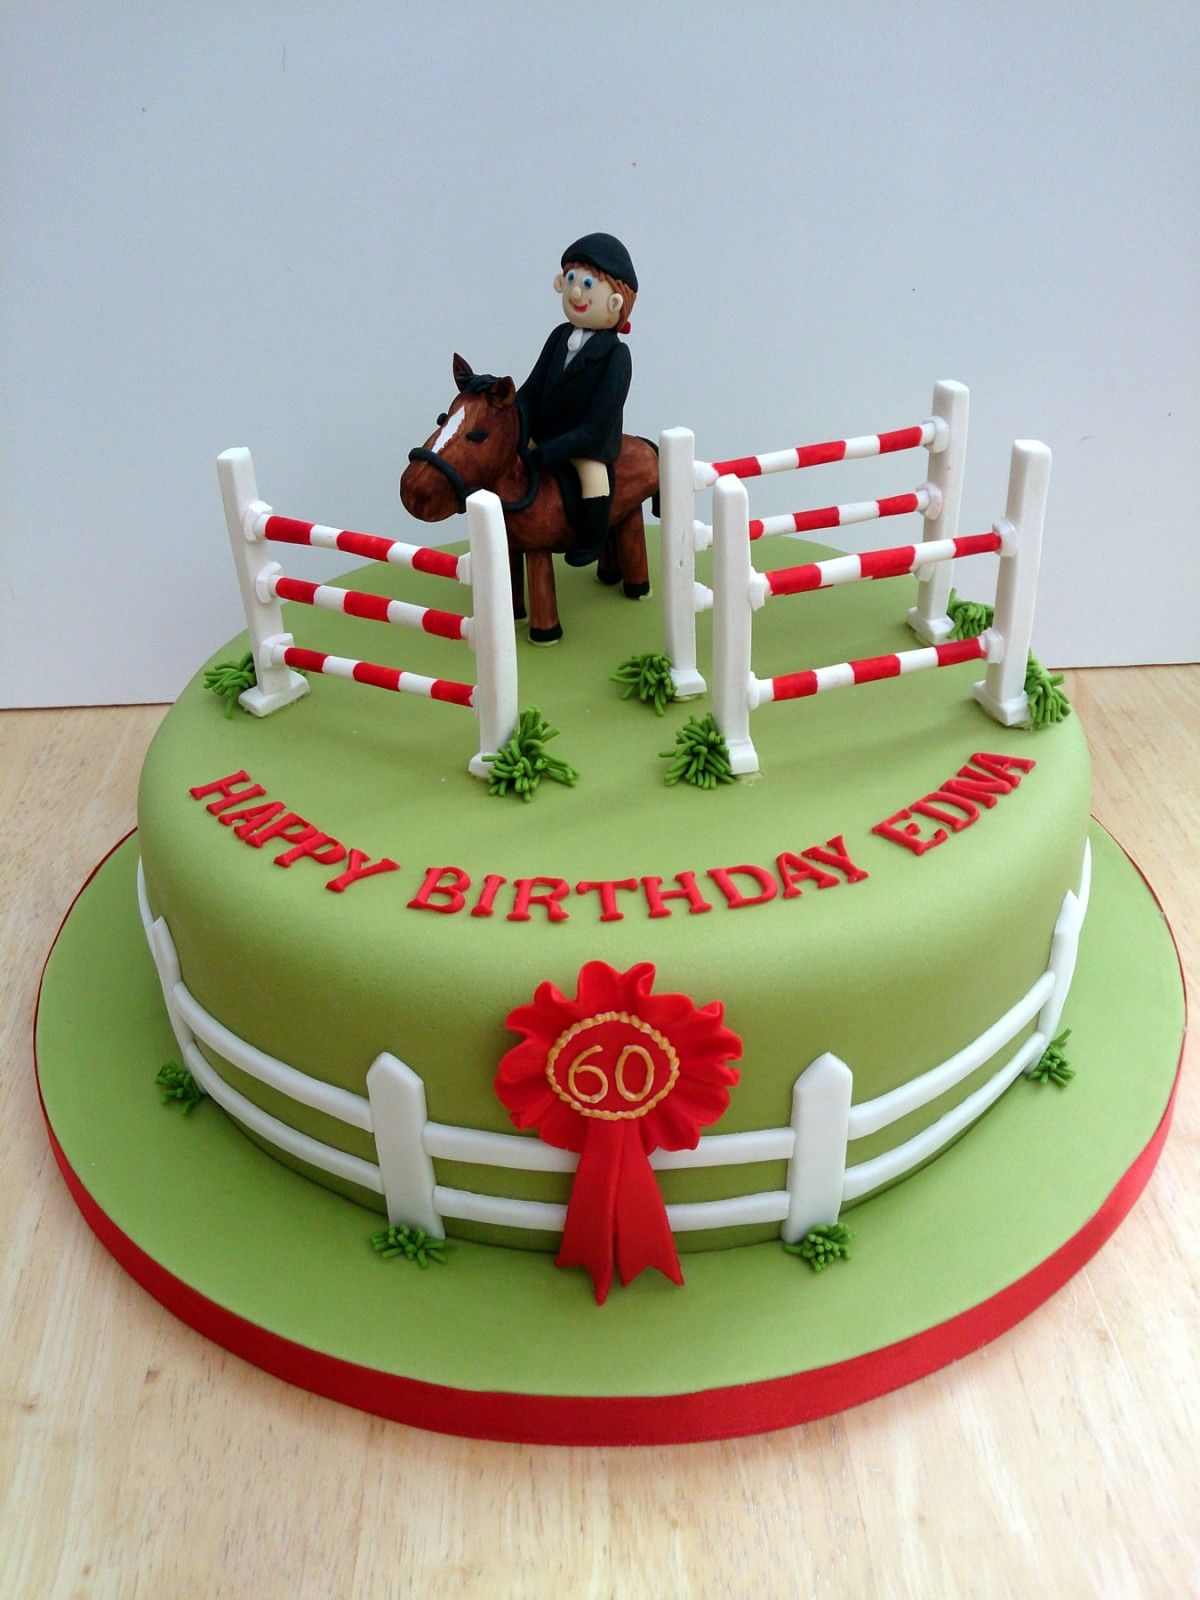 Show Jumping Cake